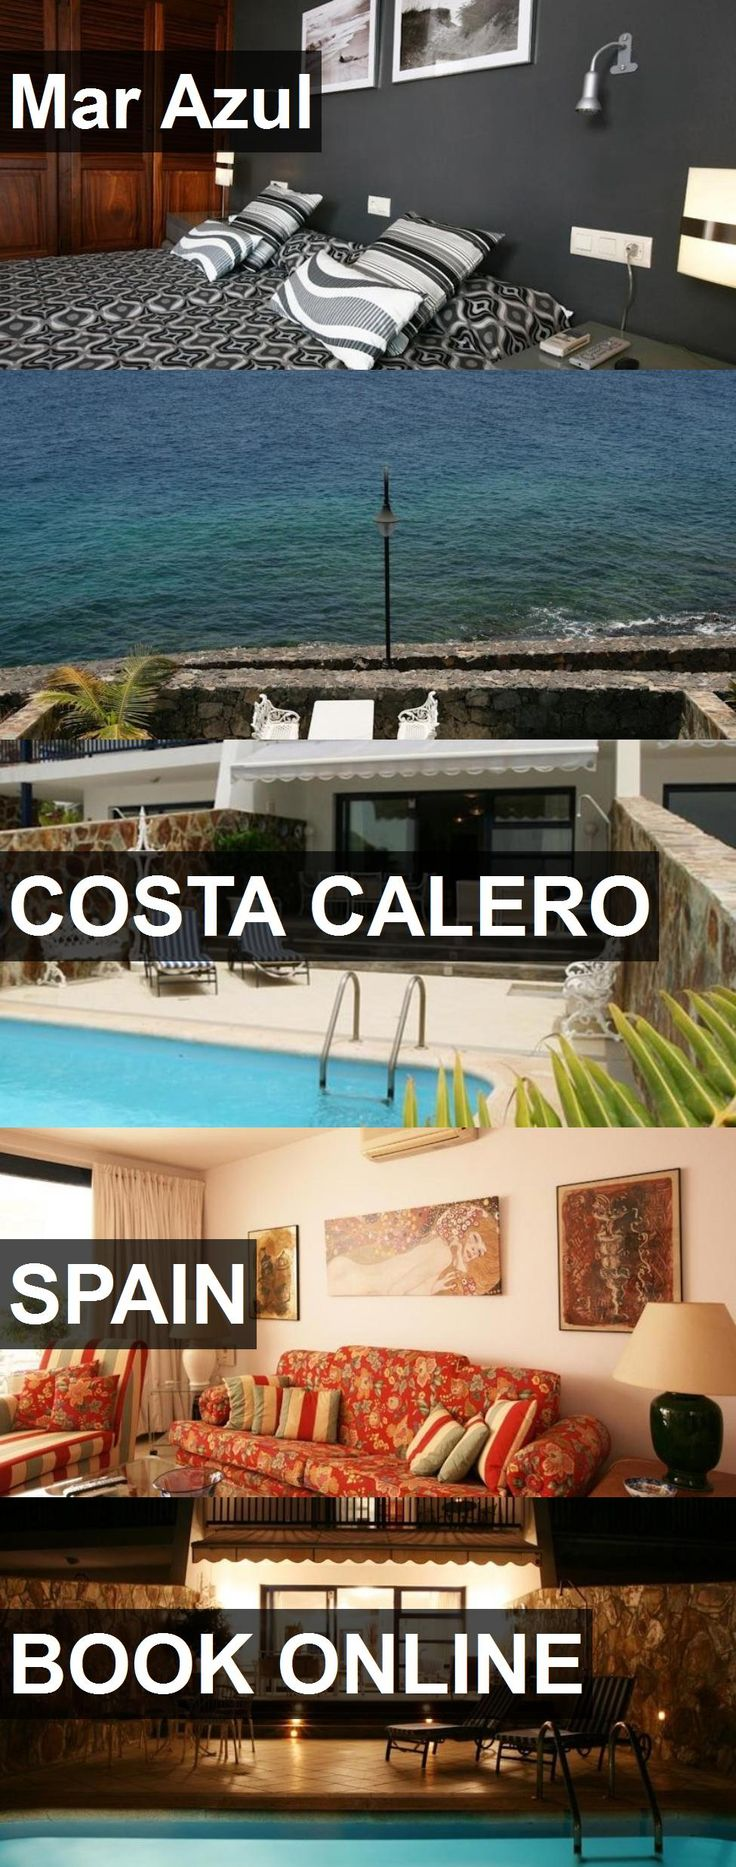 Hotel Mar Azul in Costa Calero, Spain. For more information, photos, reviews and best prices please follow the link. #Spain #CostaCalero #travel #vacation #hotel